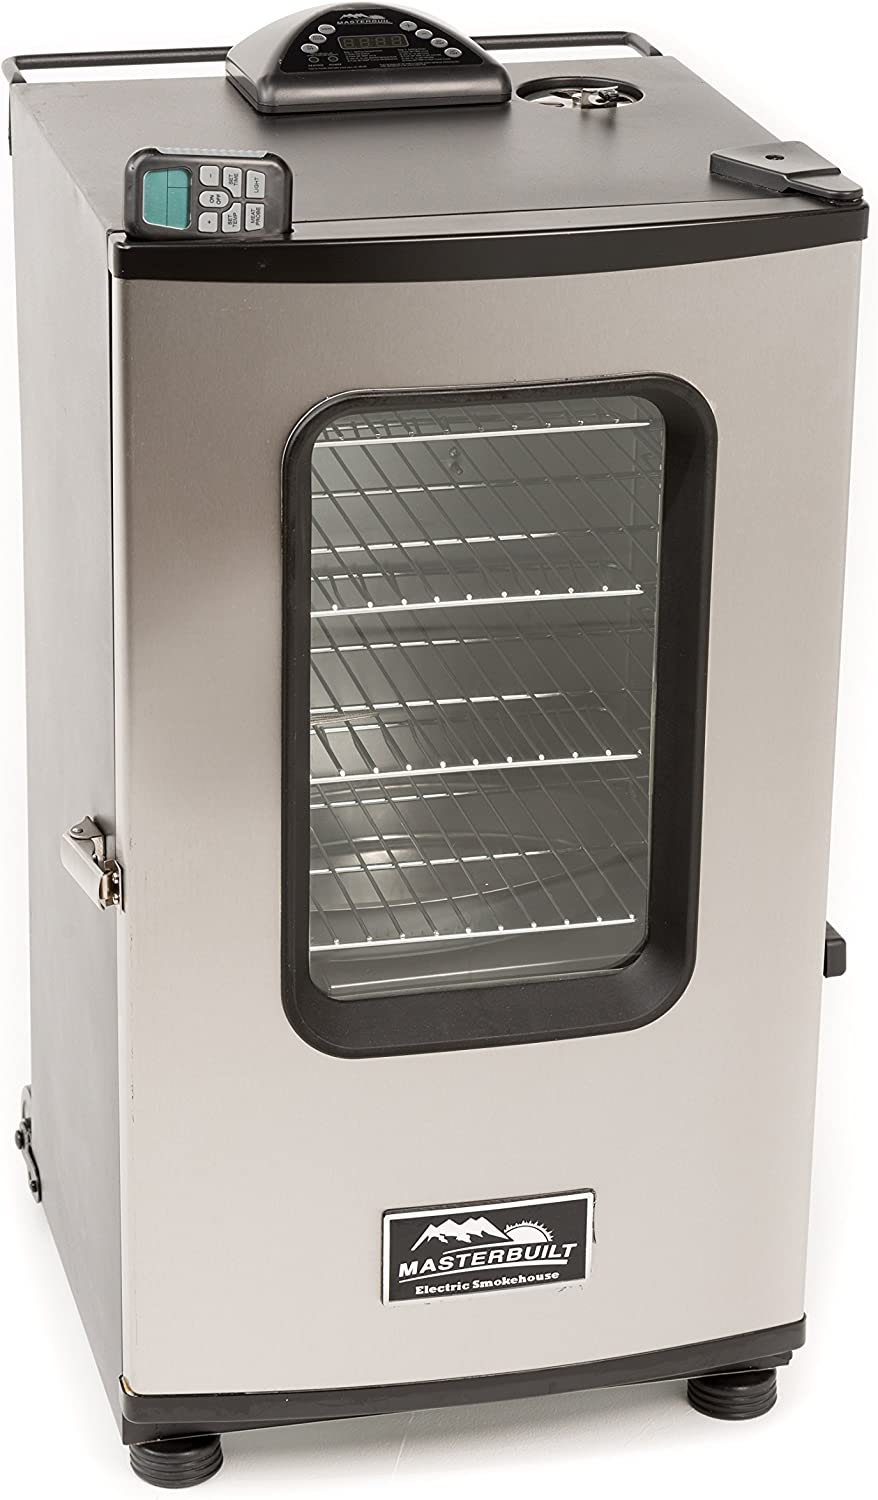 Best in overall quality: Masterbuilt 20078715 smoker